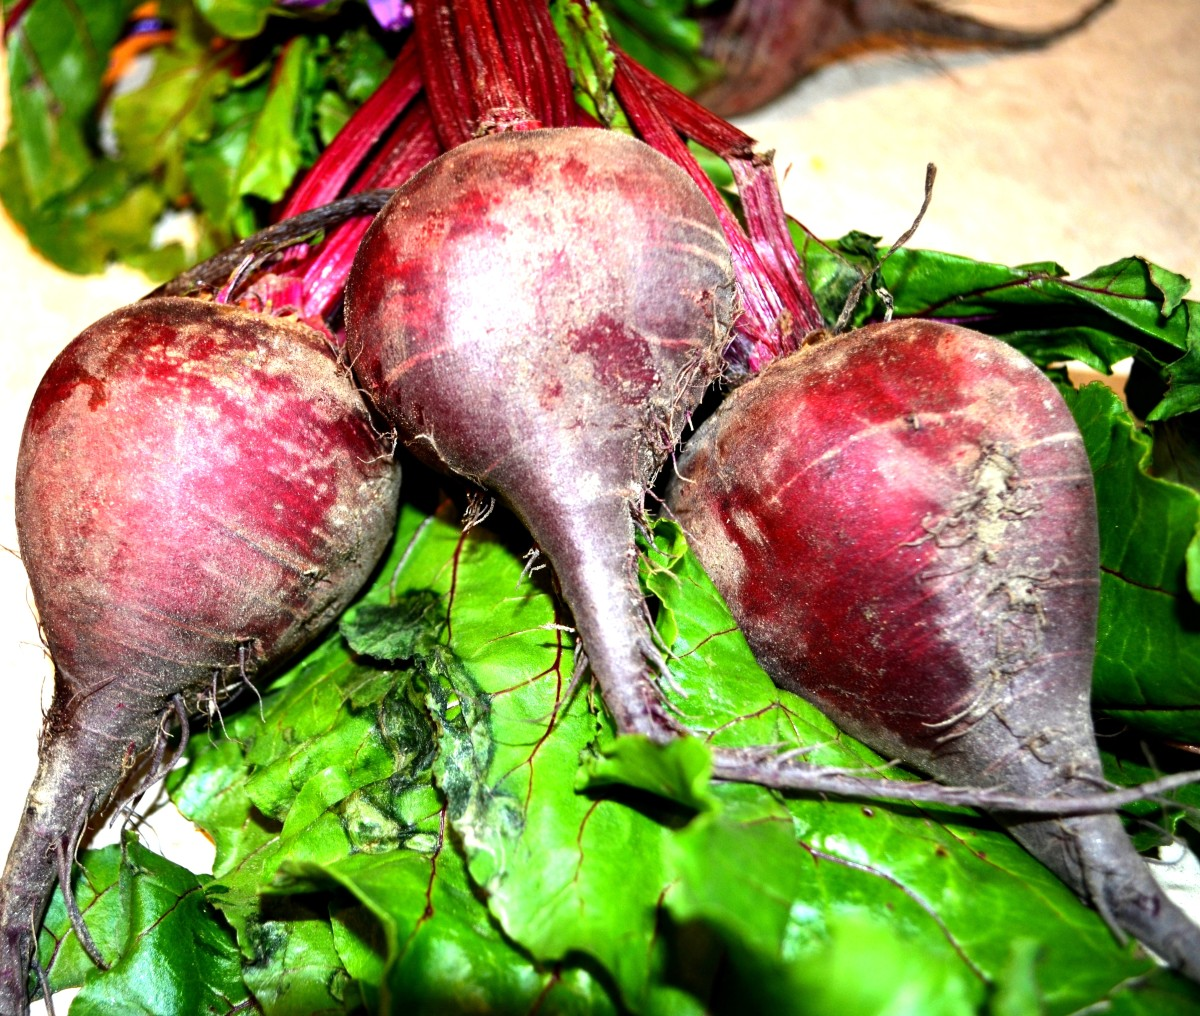 Eat one medium-sized beet every week for best results.